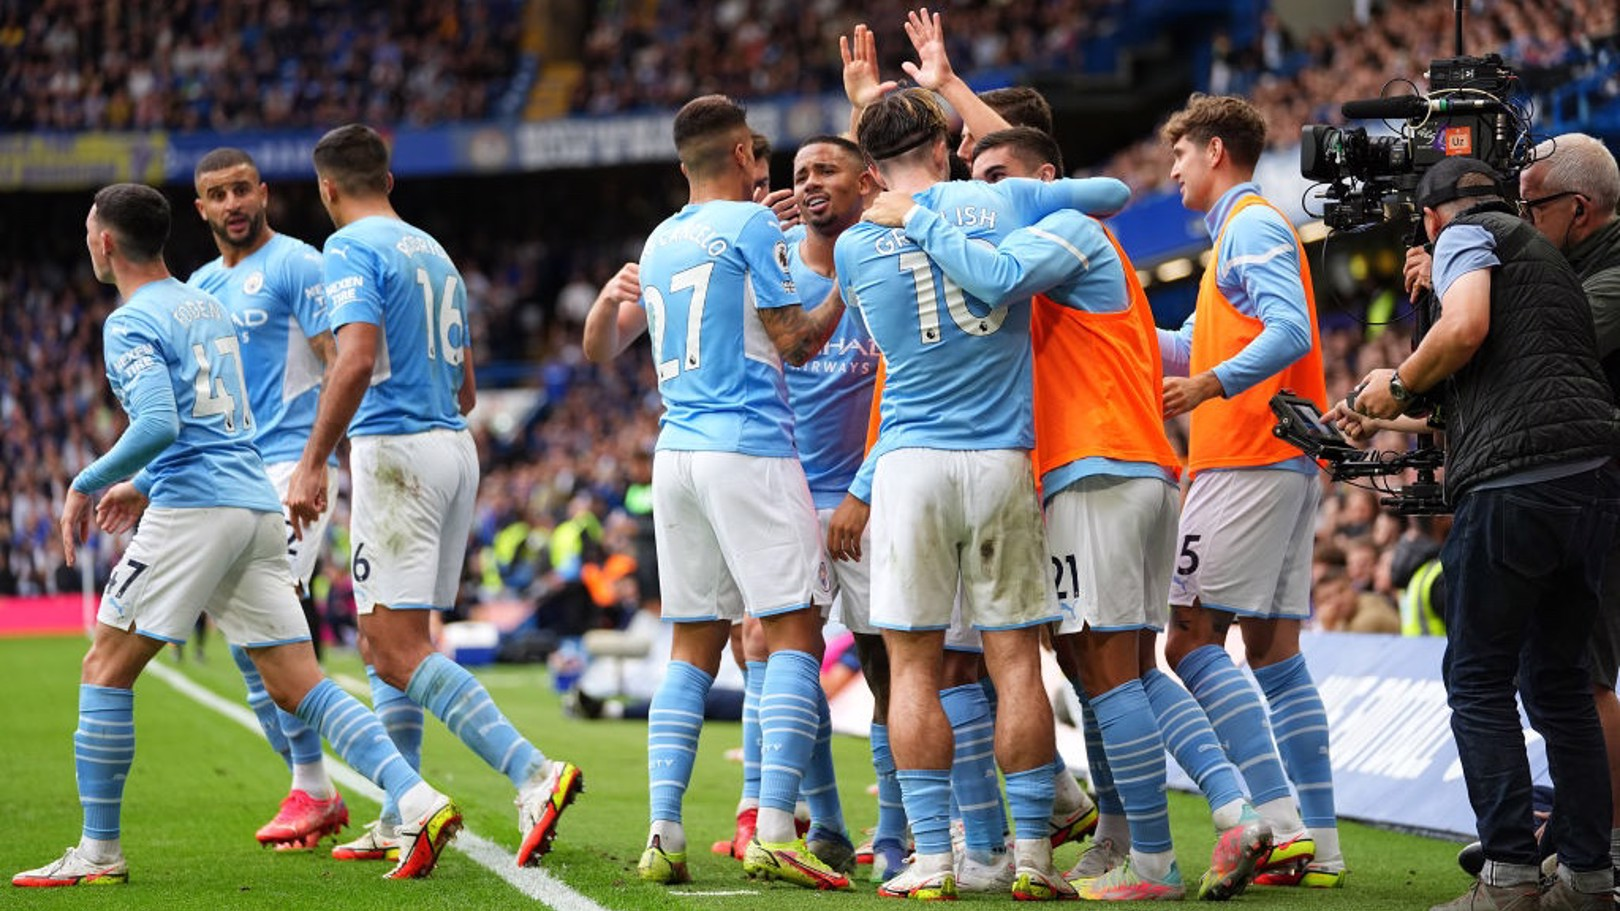 SQUAD GOALS: The starting players and the subs all come together to celebrate the goal.